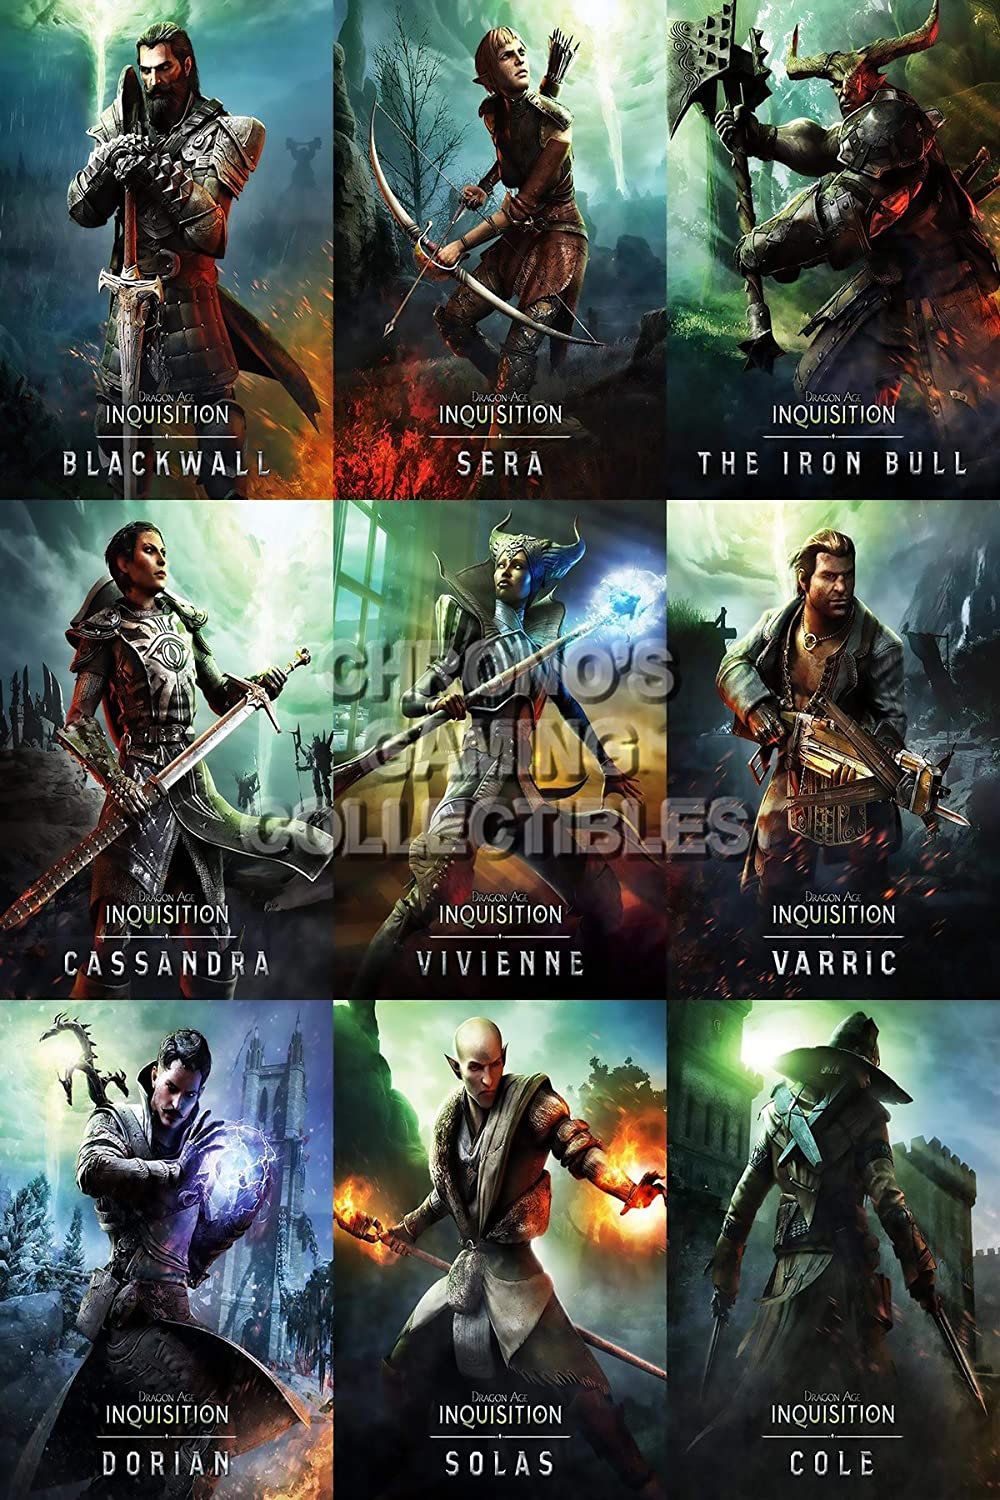 Amazon Com Primeposter Dragon Age Inquisition Poster Glossy Finish Made In Usa Characters Ydai004 16 X 24 41cm X 61cm Posters Prints,United Checked Baggage Weight